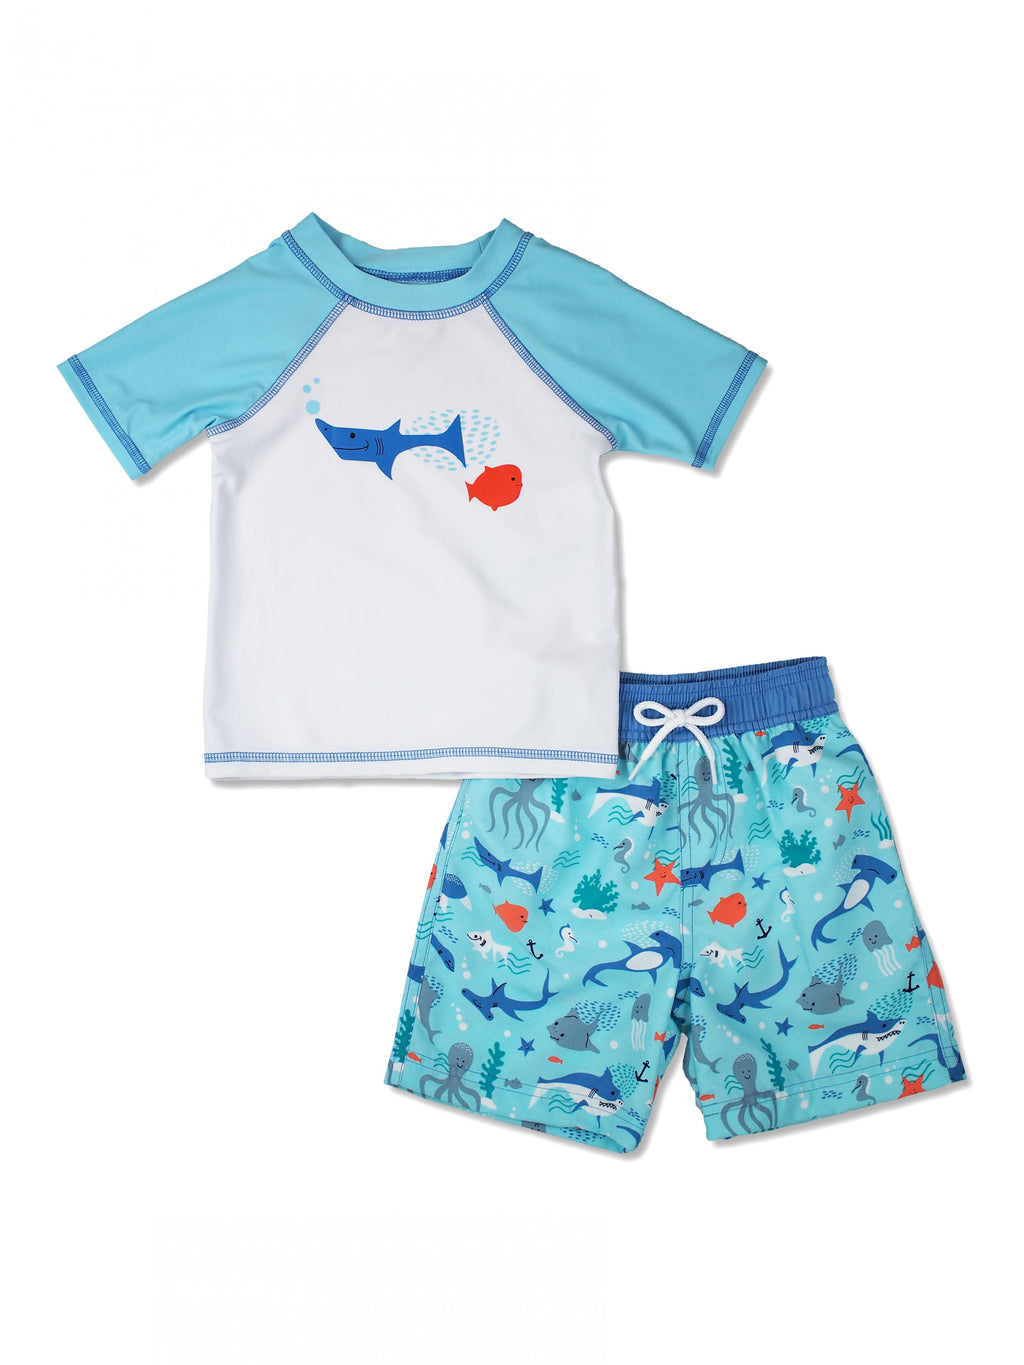 Boys Sea Animals Short Sleeve Rash Guard & Swim Trunks Set, Blue